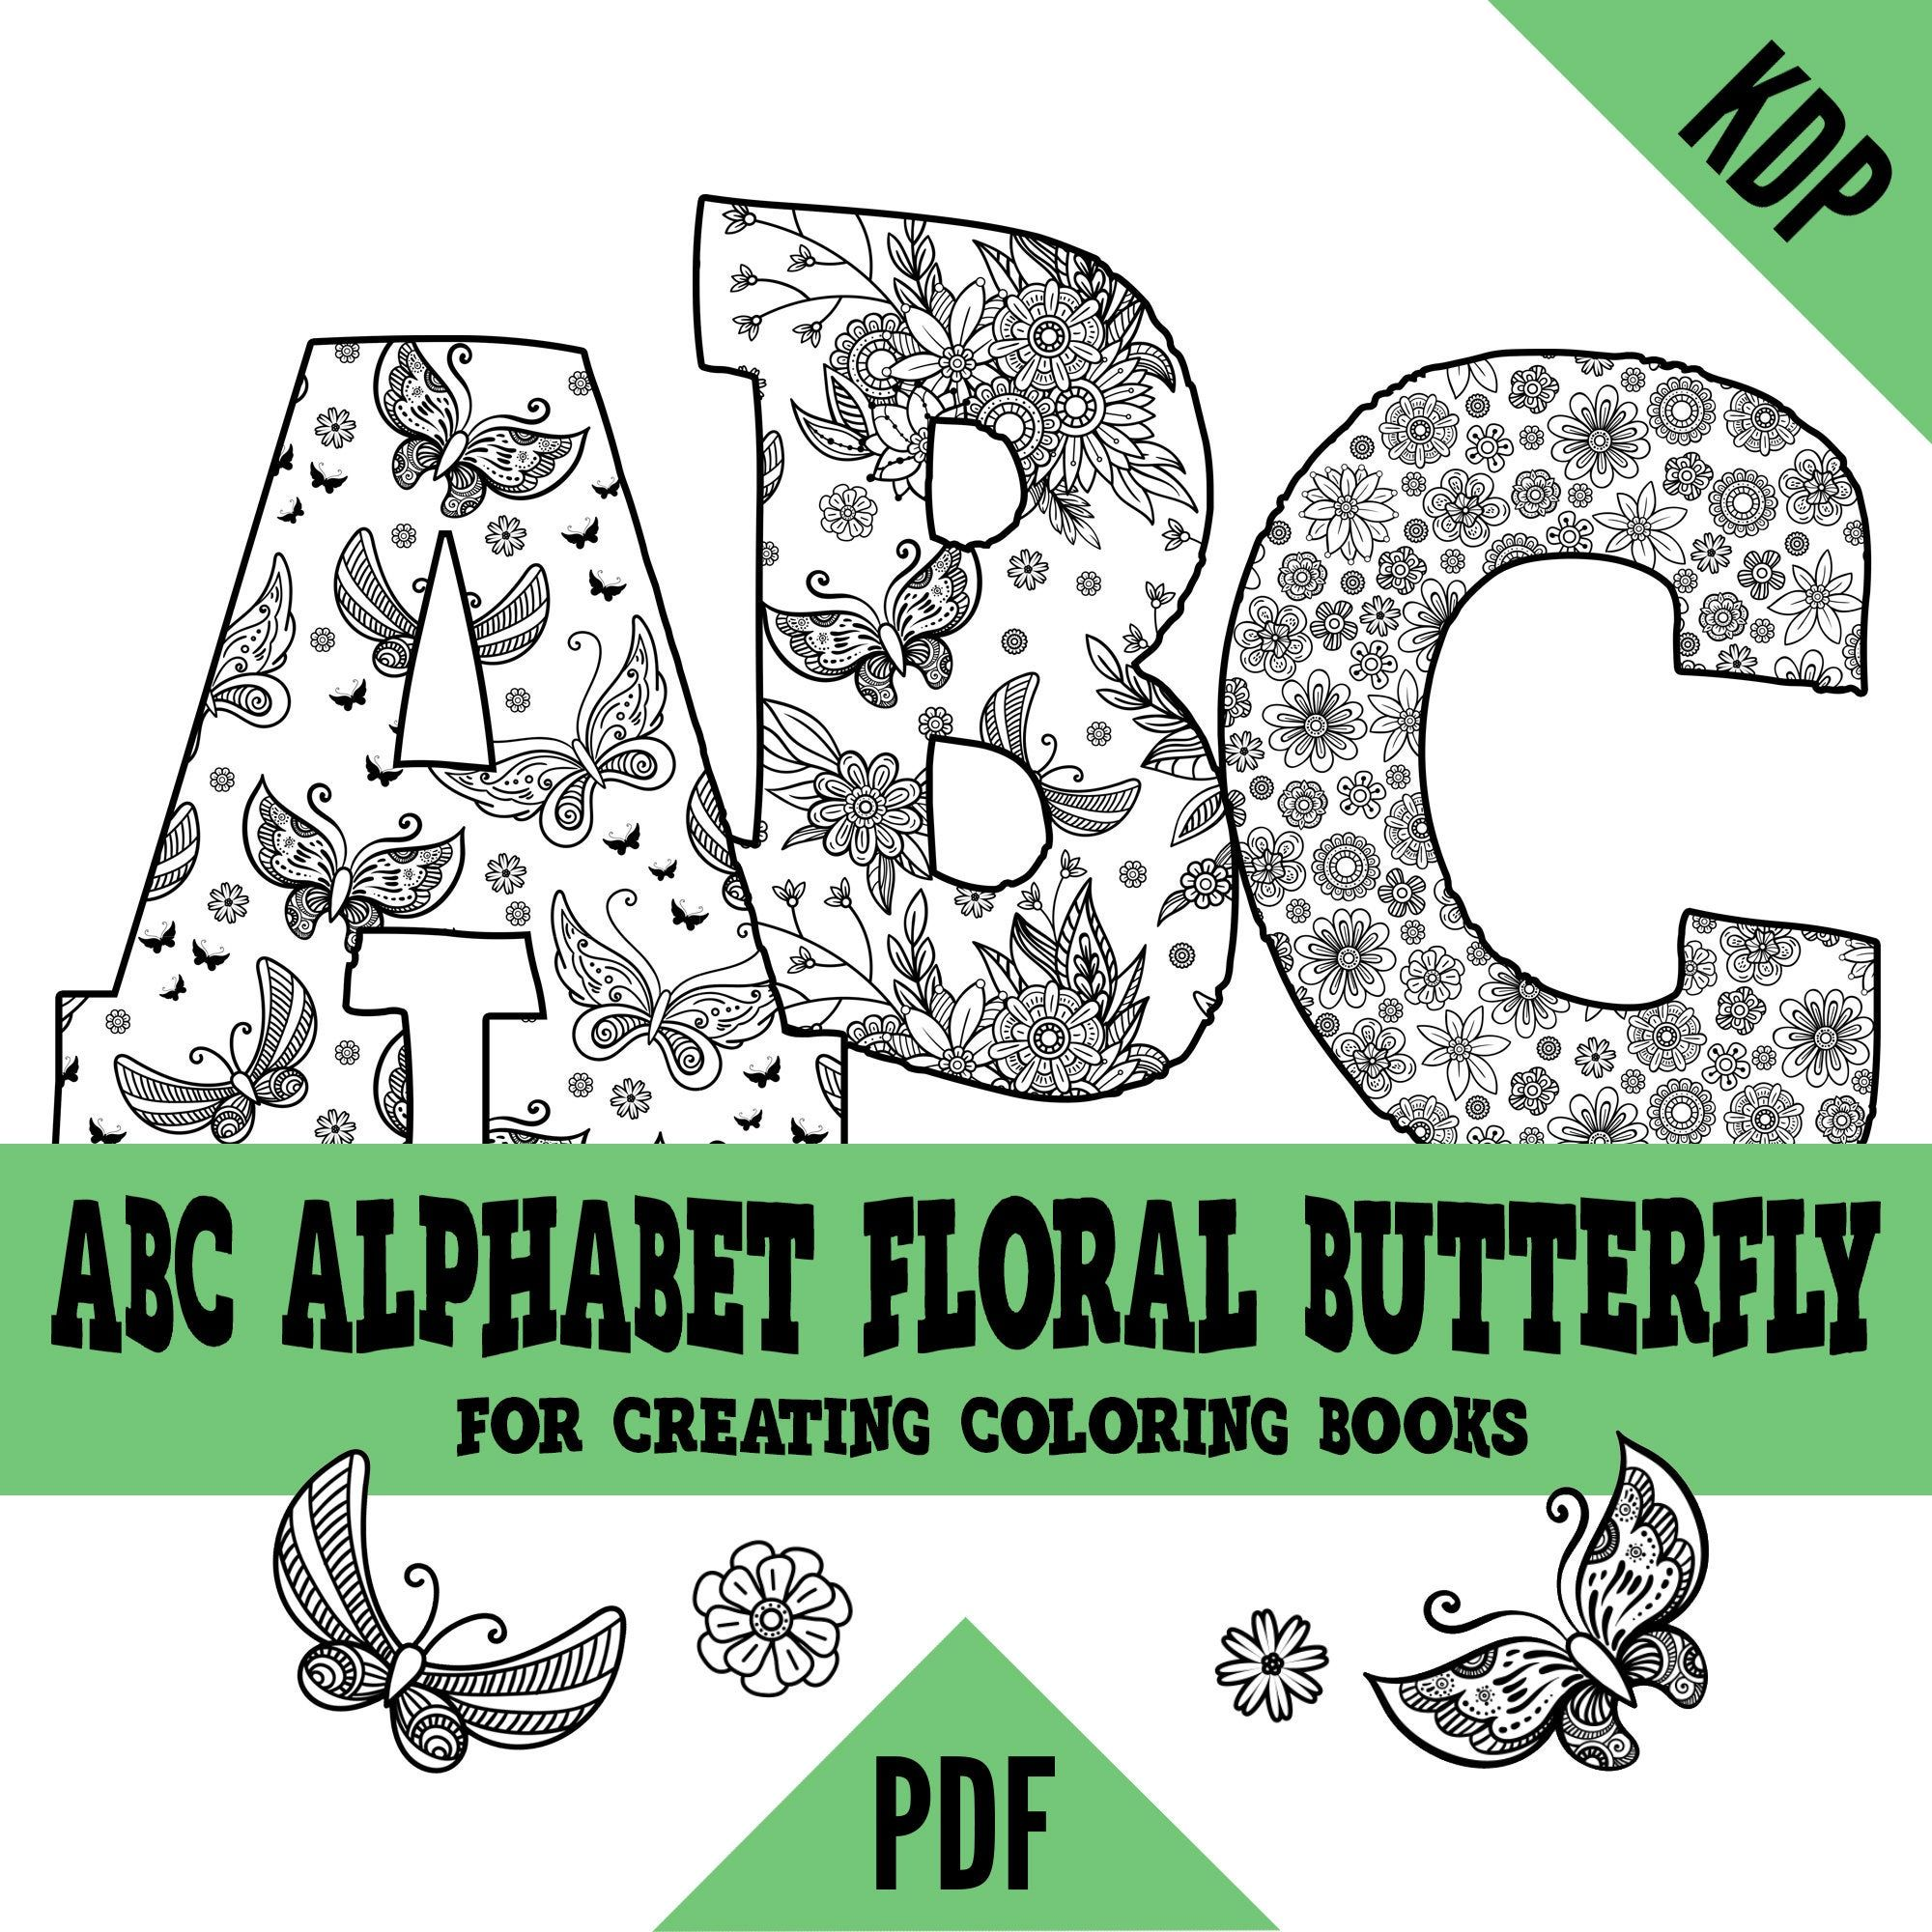 Kdp Alphabet Floral Butterflies Coloring Pages Sheets Pdf Abc Etsy Coloring Books Coloring Pages Sweary Coloring Book